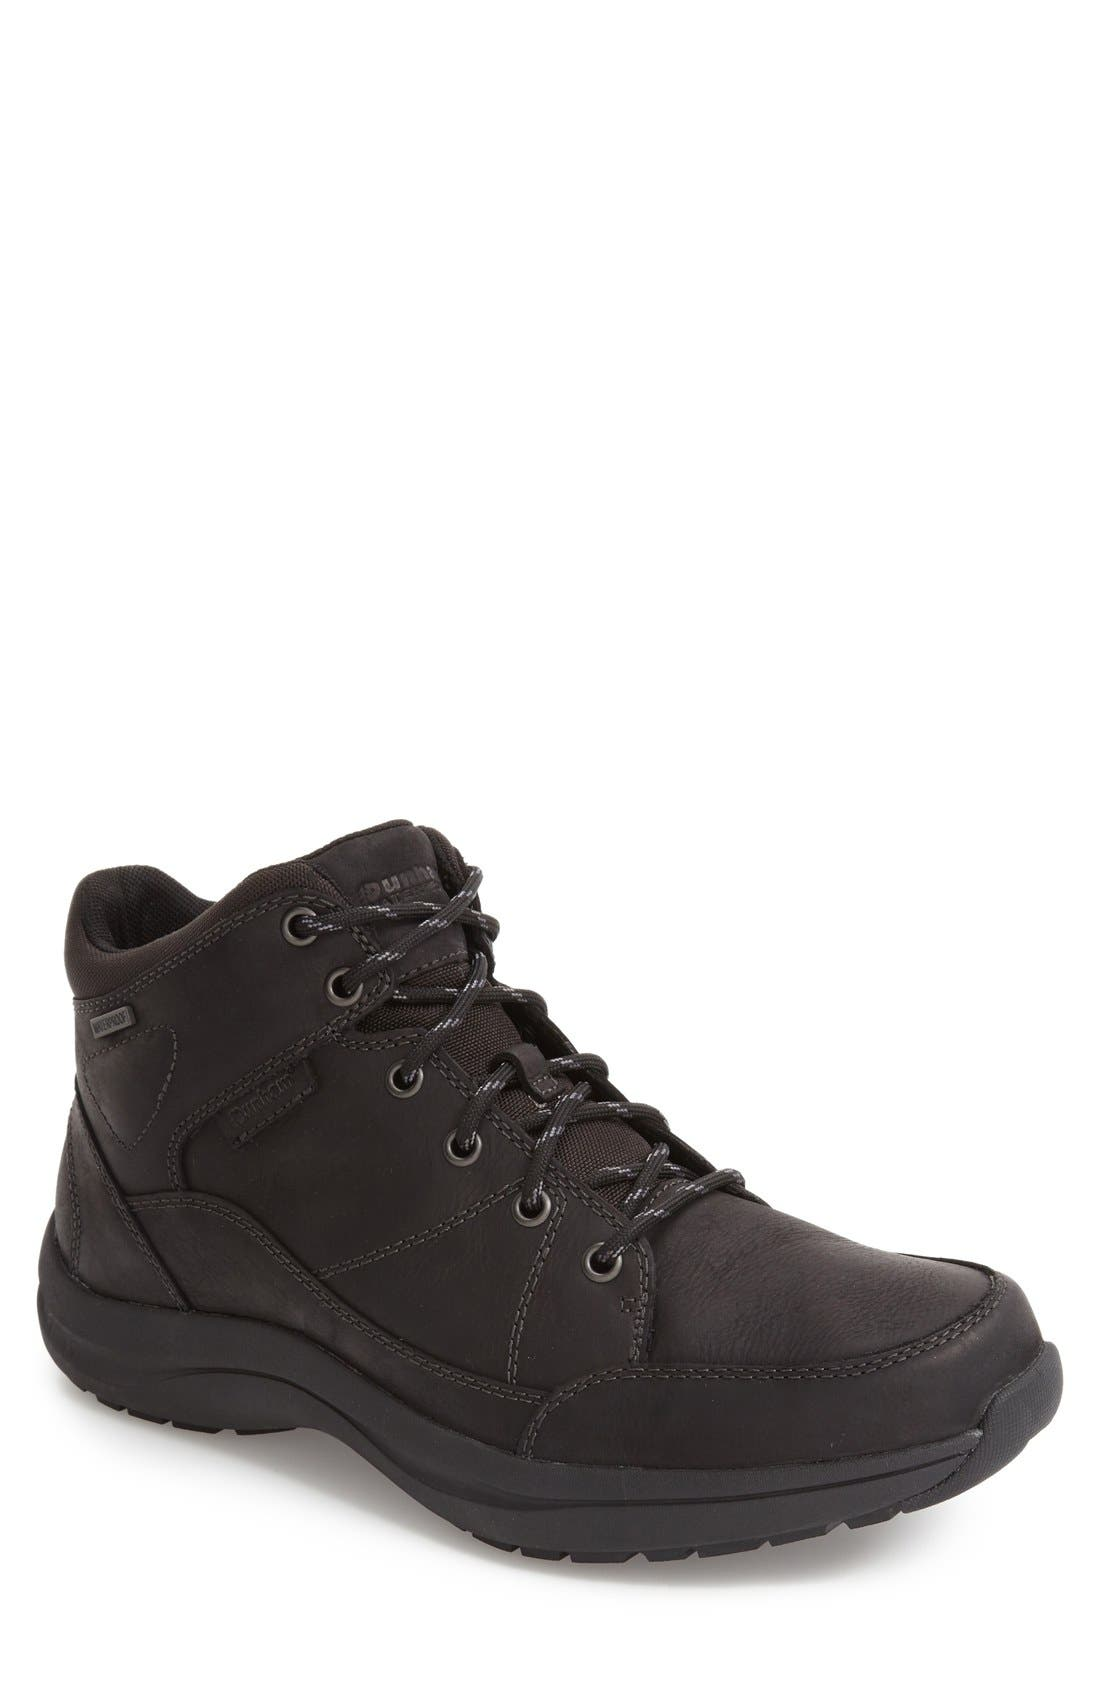 DUNHAM Simon-Dun Waterproof Boot